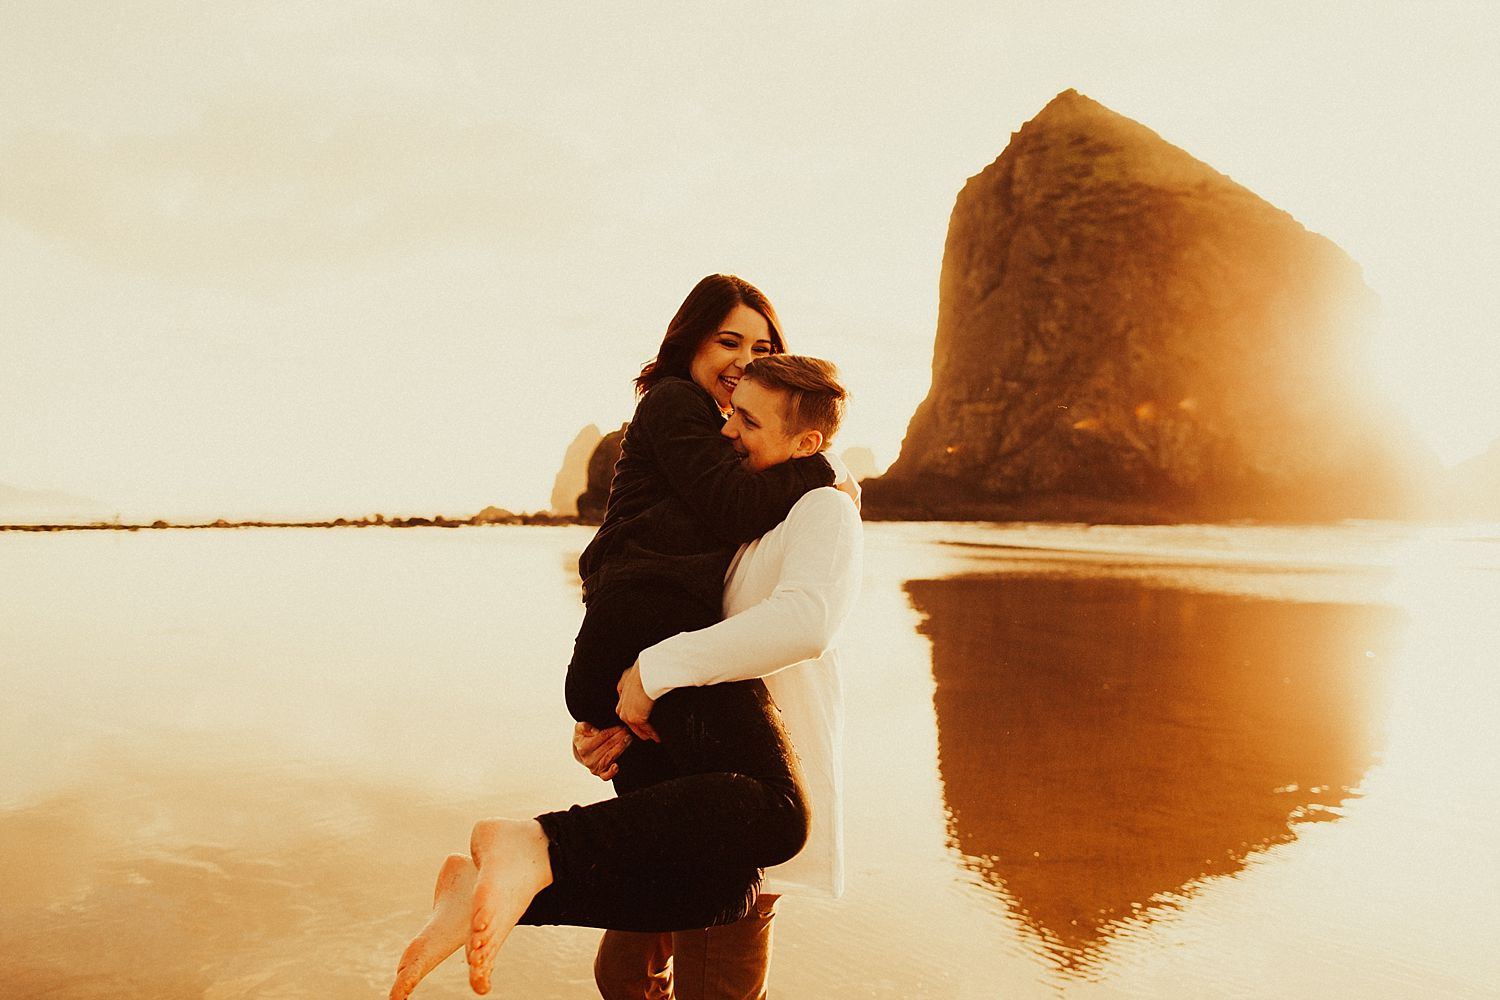 cannon-beach-engagement-session_1463.jpg